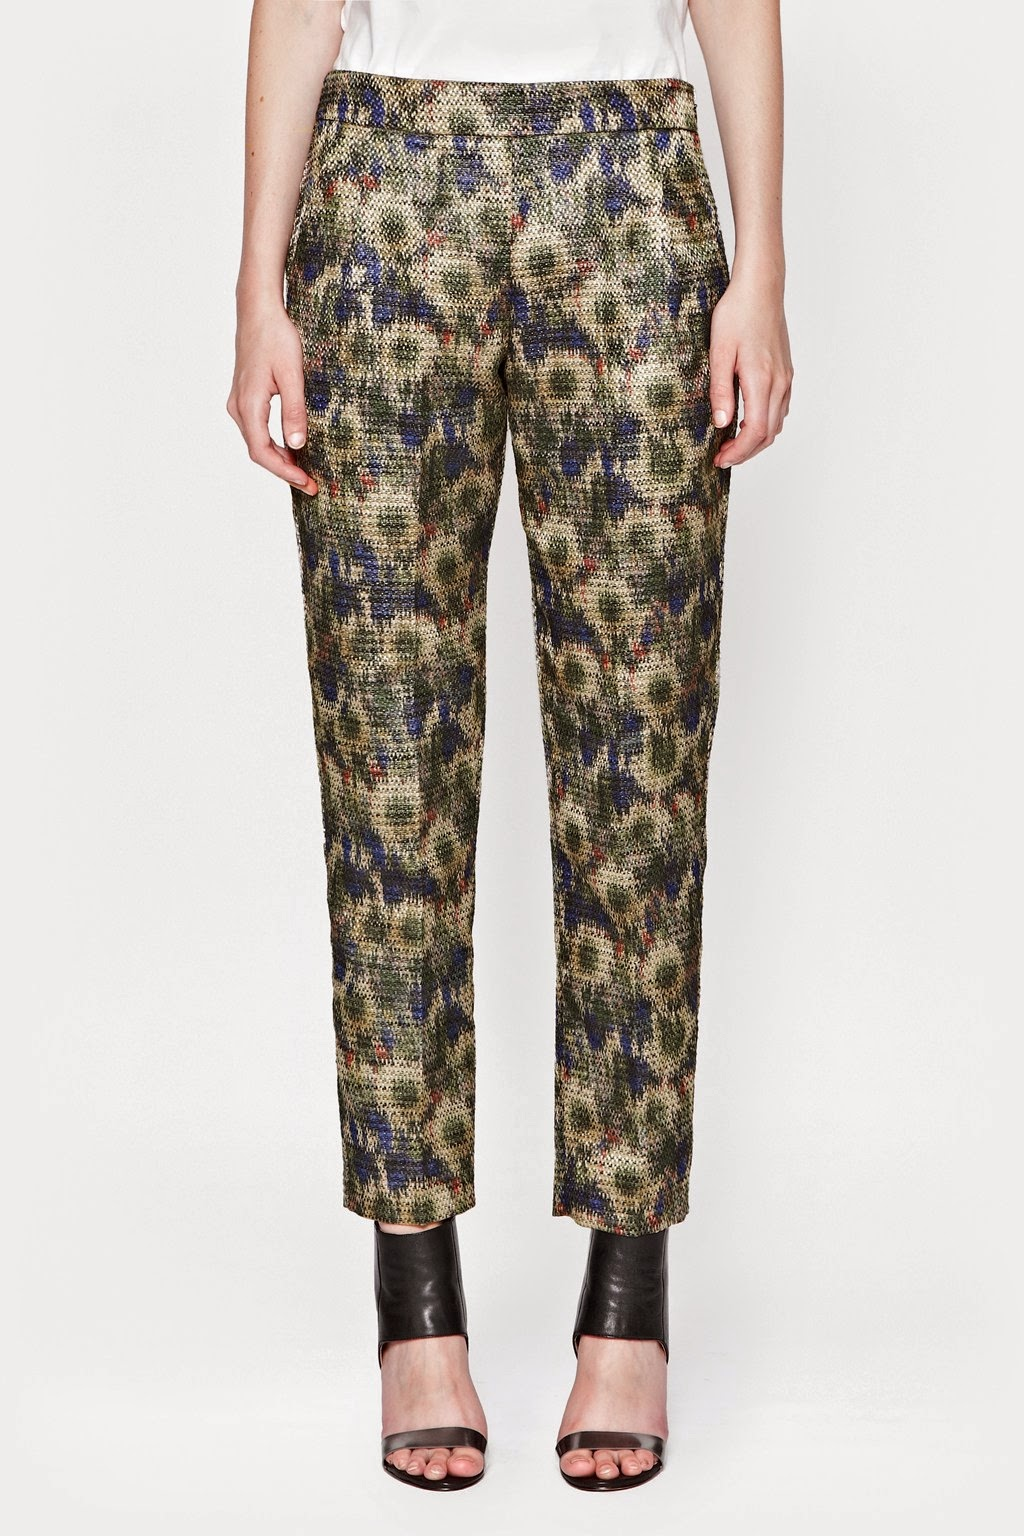 french connection patterned trousers